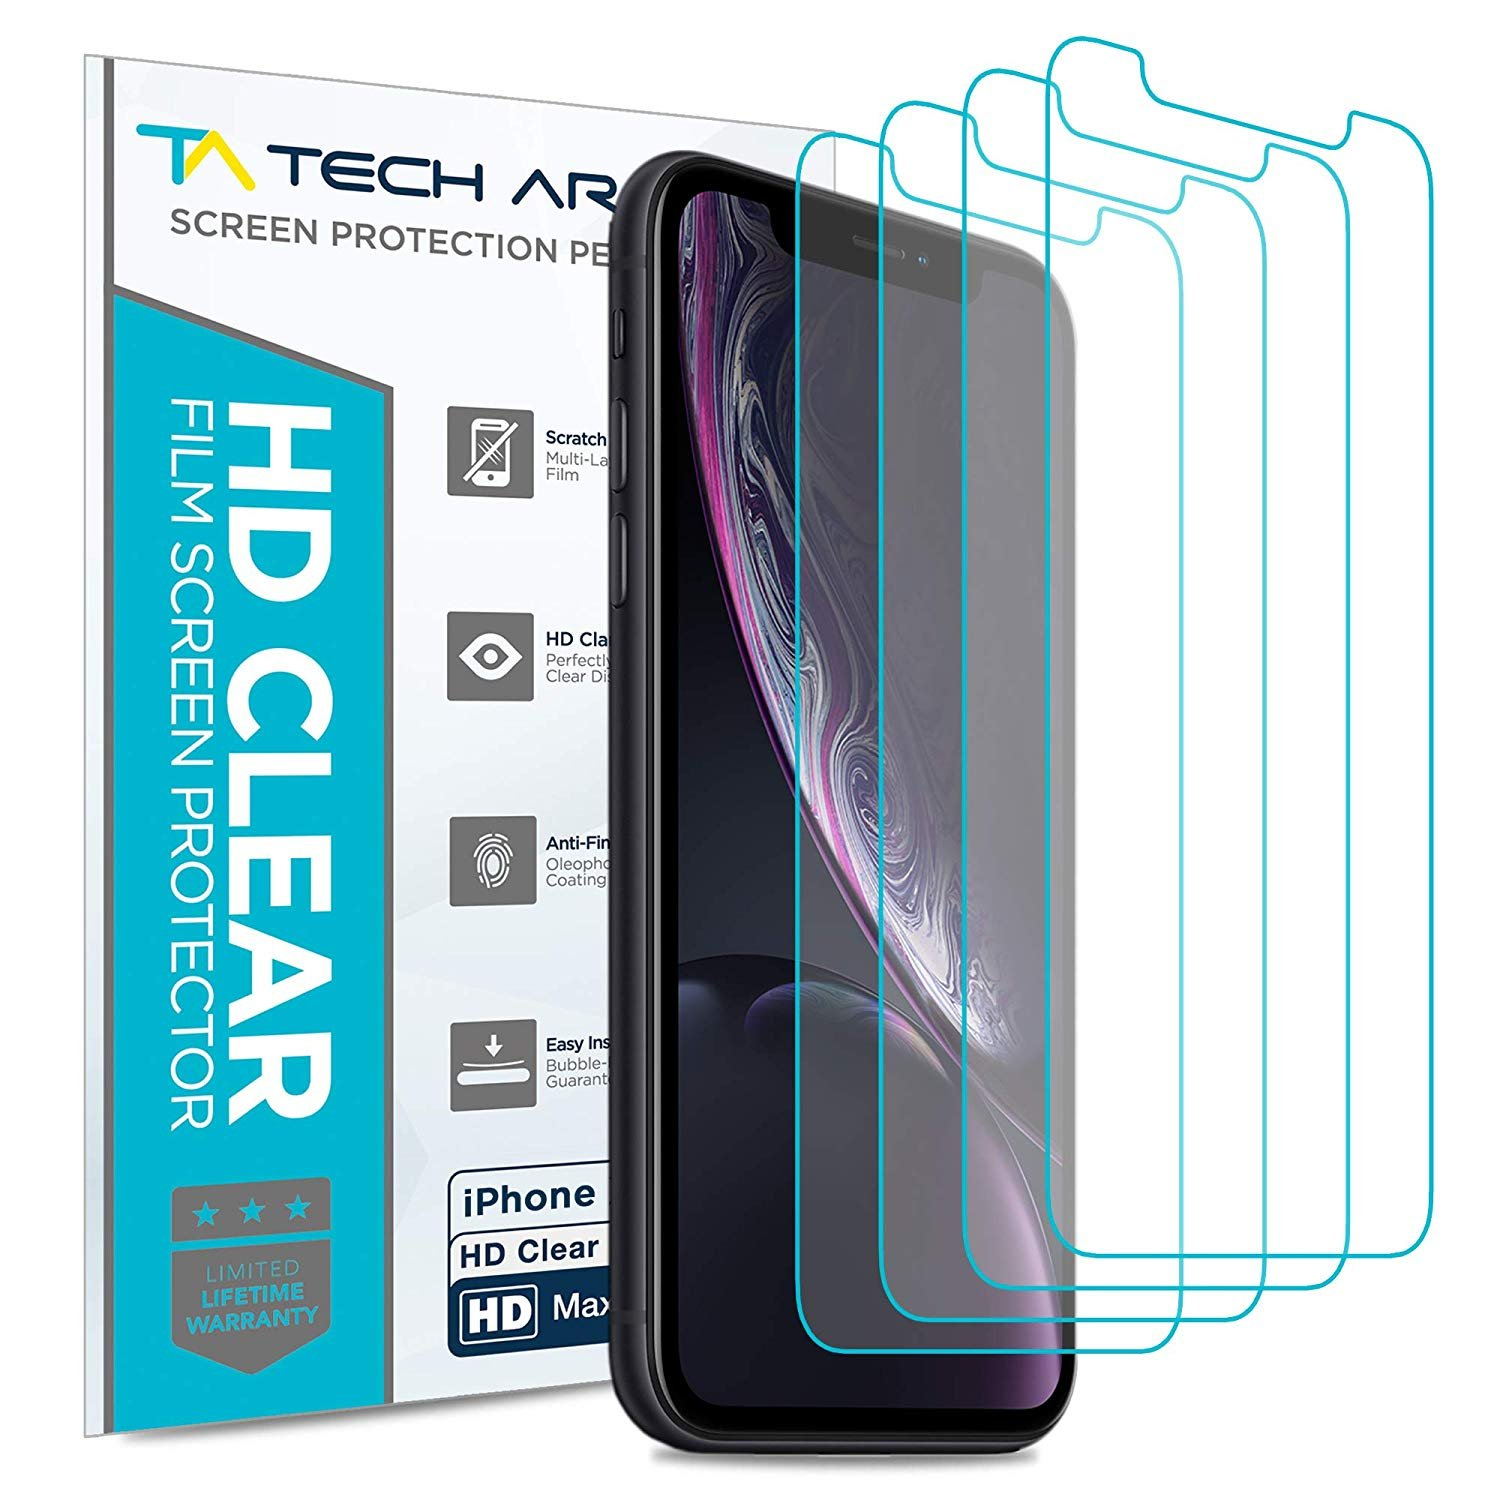 Tech Armor Apple iPhone Xr HD Clear Film Screen Protector [4-Pack] Case-Friendly, Scratch Resistant, Haptic Touch Accurate Designed for New 2018 Apple iPhone Xr